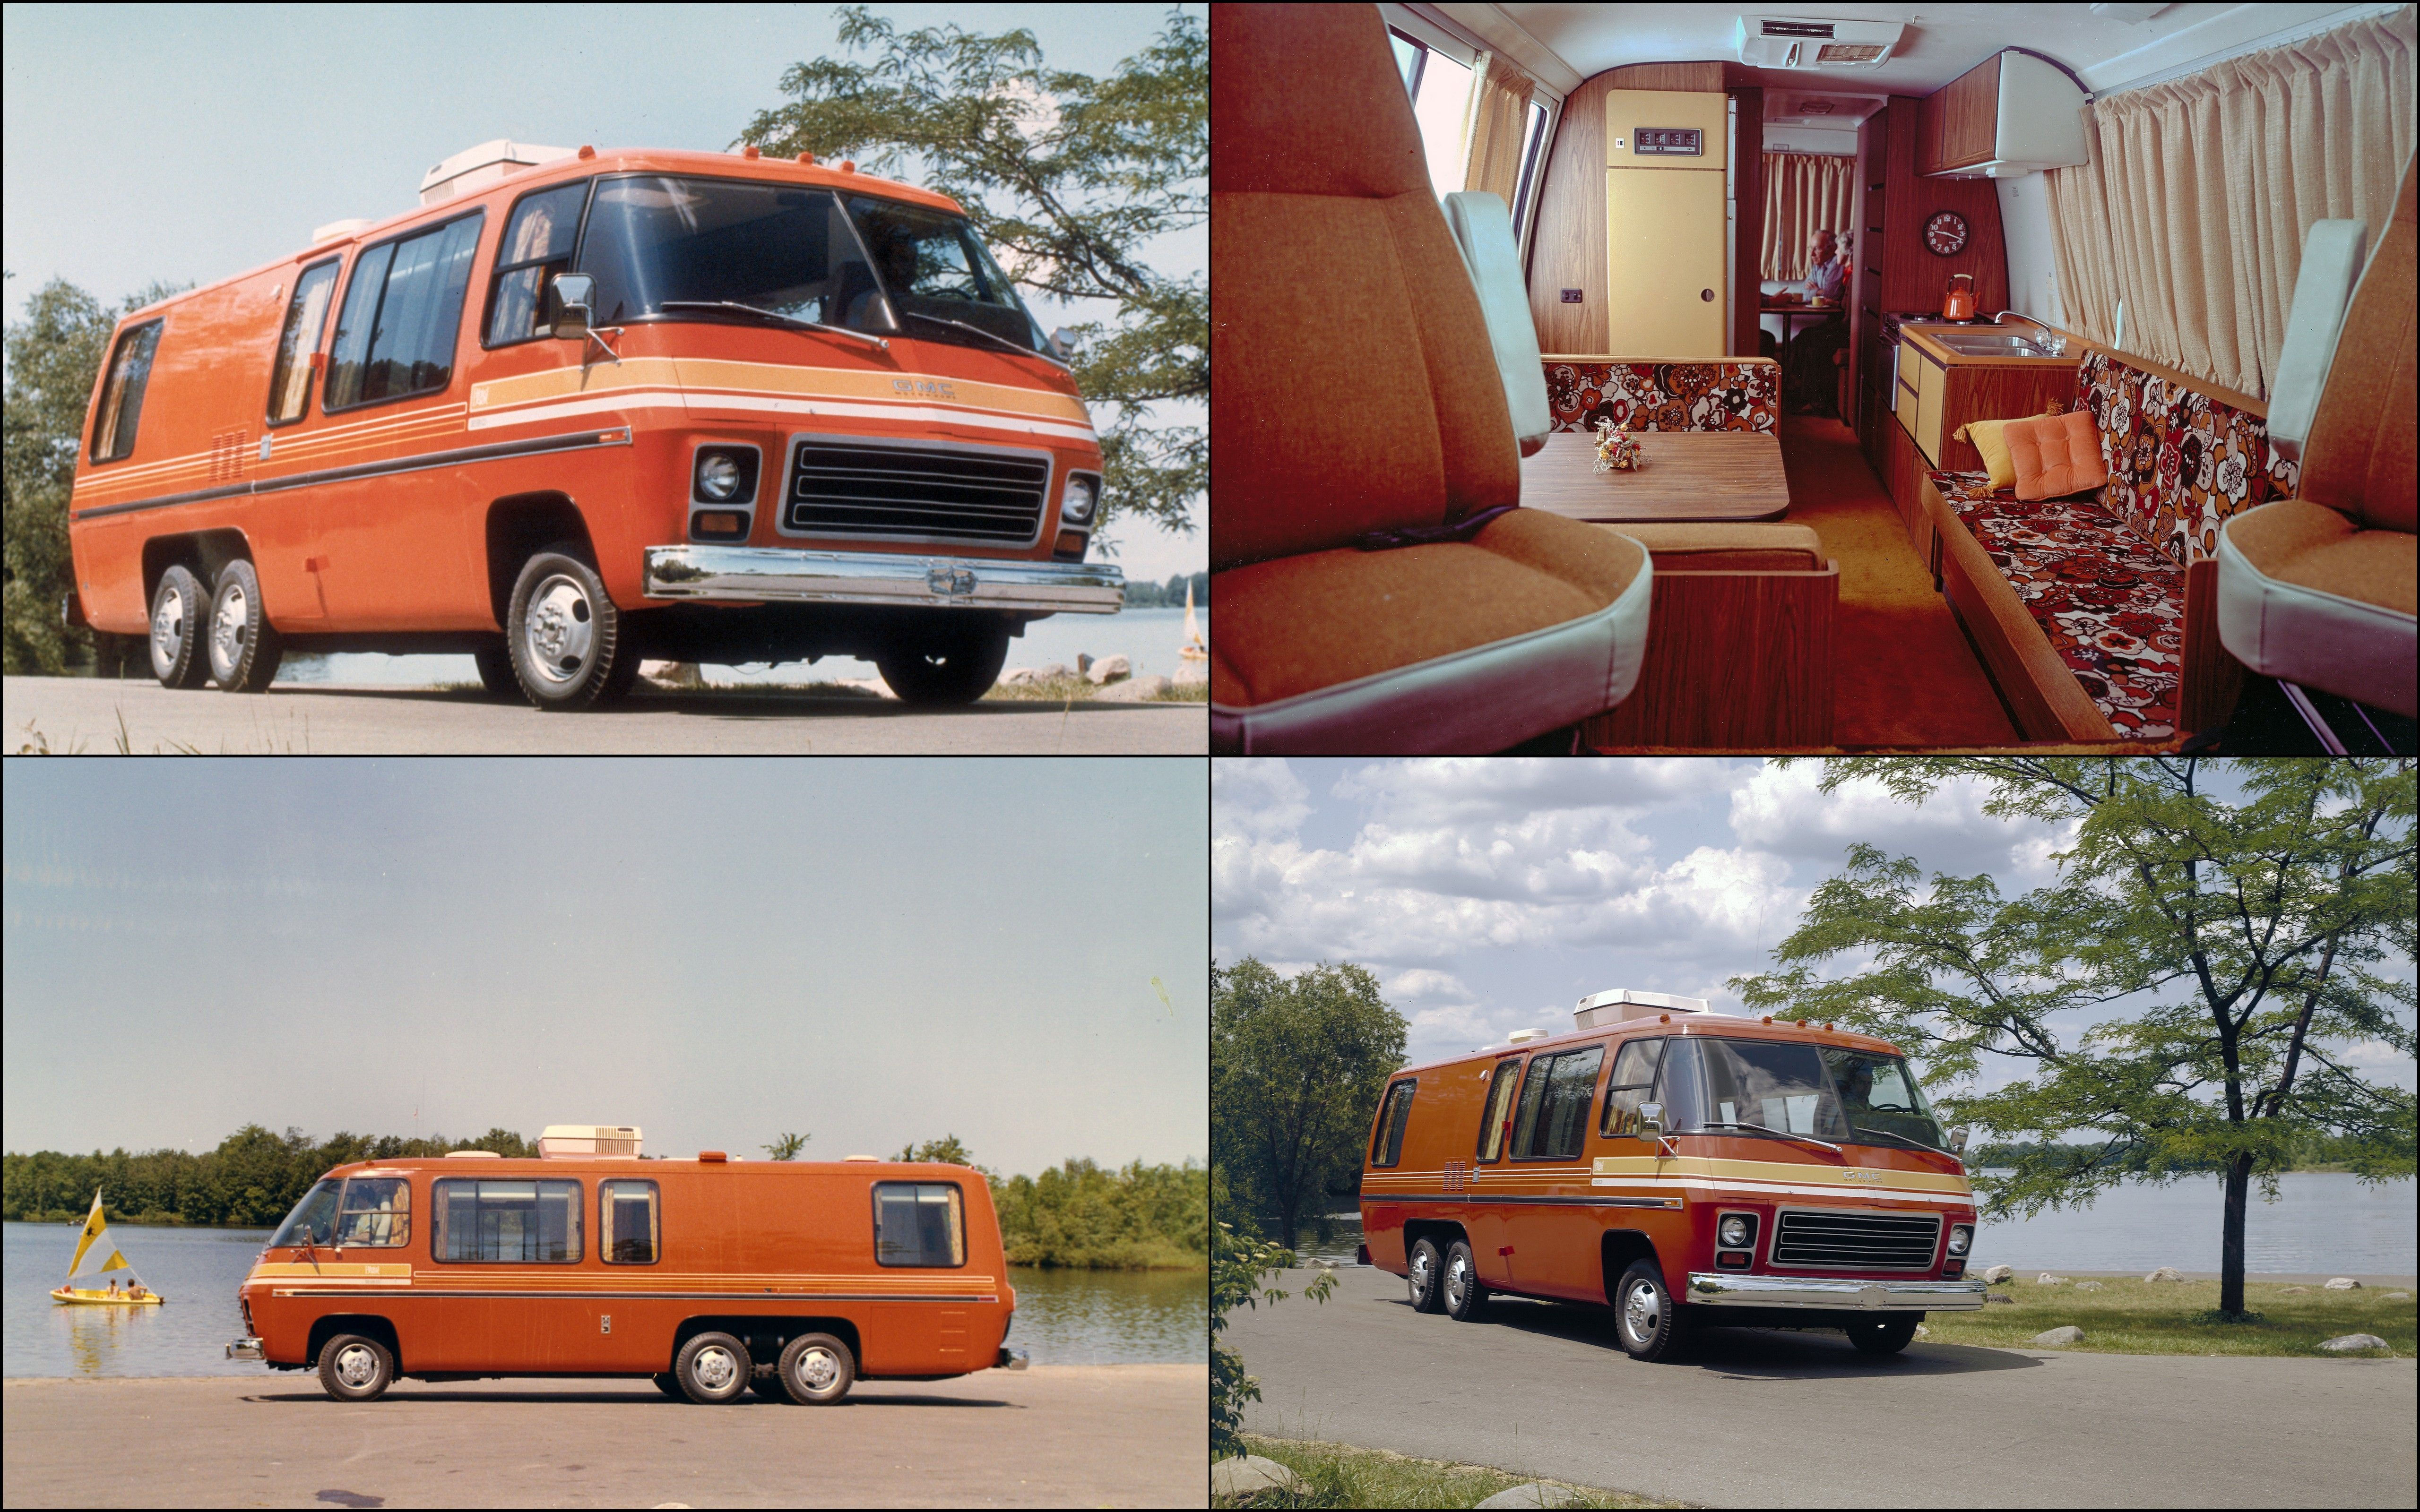 In Late 72 The General Motors Truck And Coach Division Debuted Their Iconic 6 Wheel Gmc Motorhome Gmc Motorhome Vintage Motorhome Motorhome